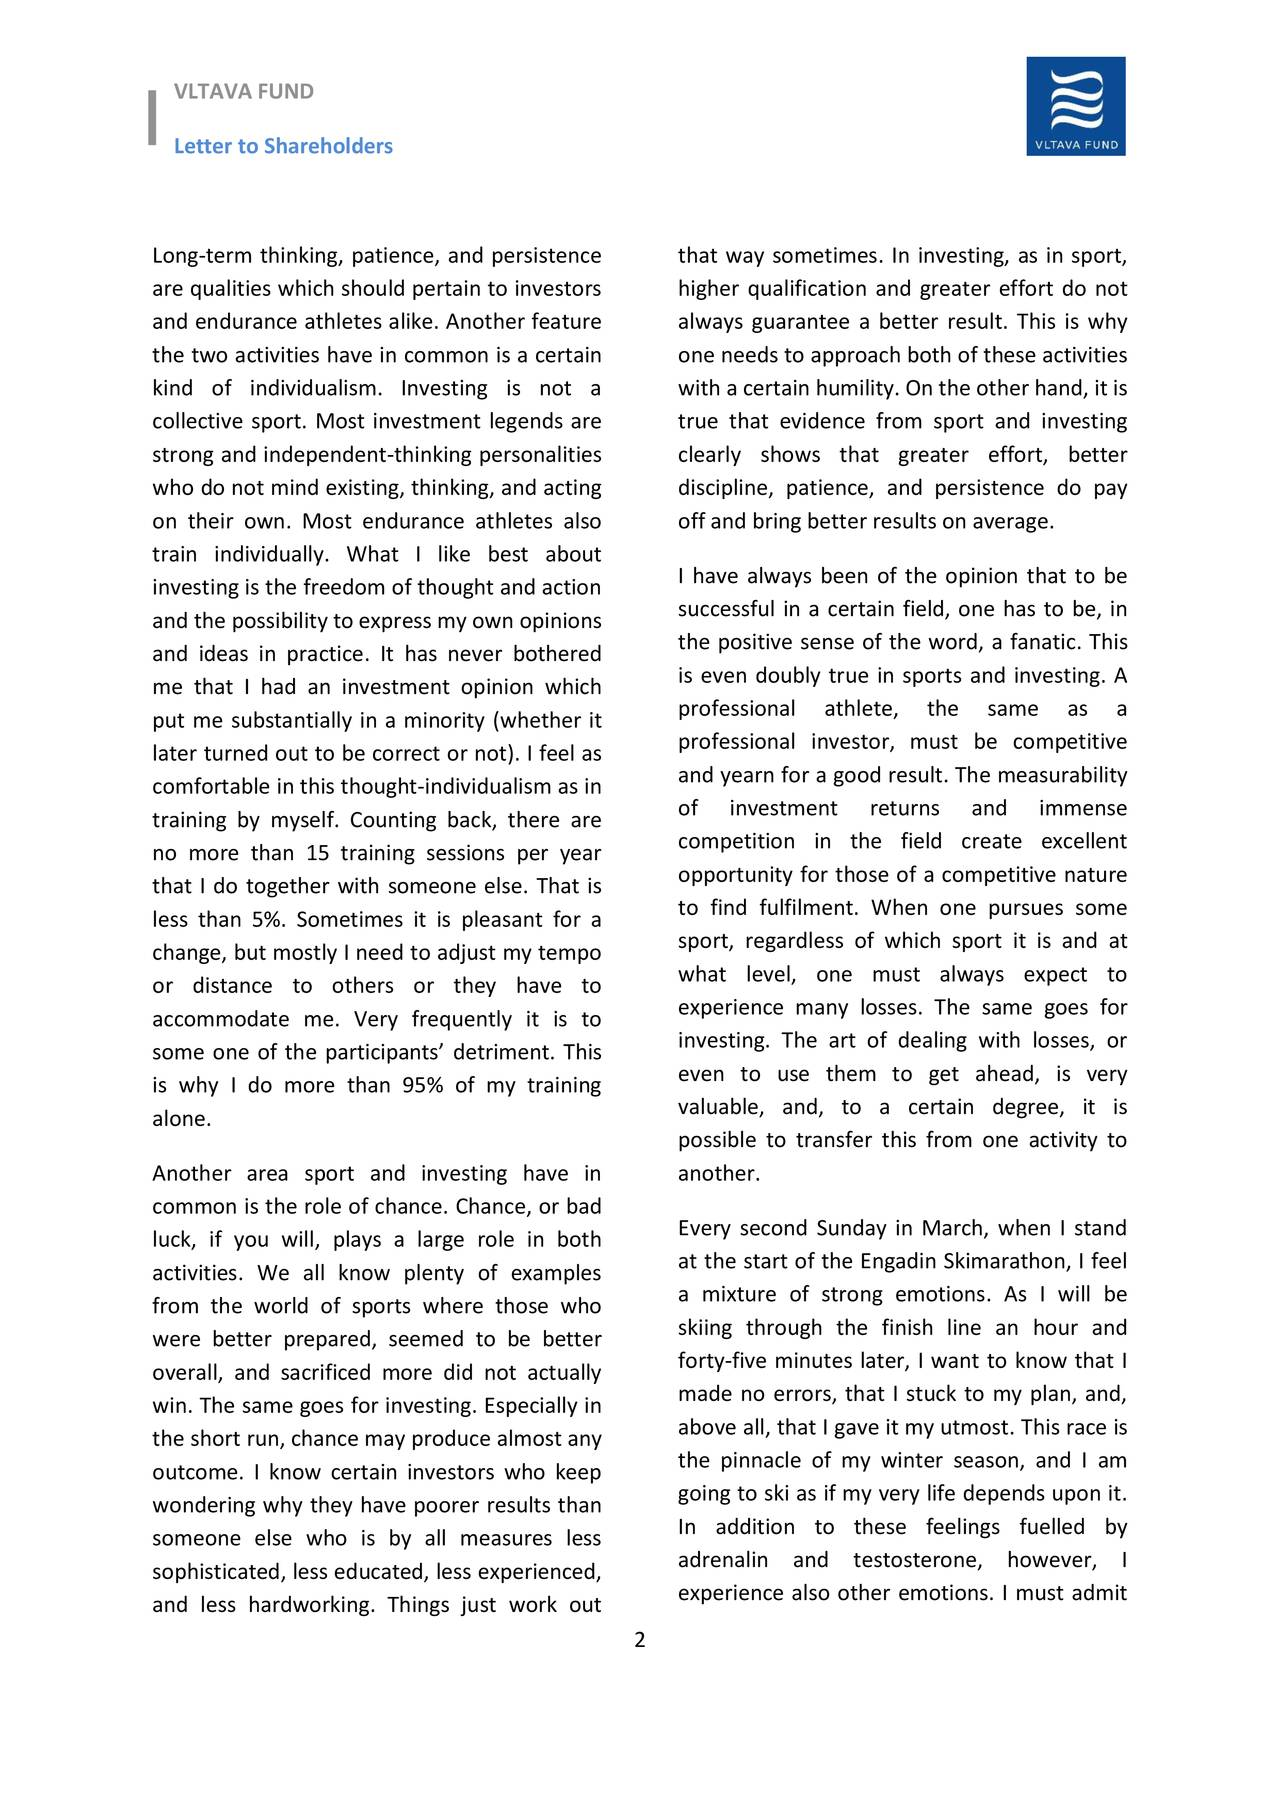 Letter to Shareholders Long-term thinking, patience, and persistence that way sometimes. In investing, as in sport, are qualities which should pertain to investors higher qualification and greater effort do not and endurance athletes alike. Another feature always guarantee a better result. This is why the two activities have in common is a certain one needs to approach both of these activities kind of individualism. Investing is not a with a certain humility. On the other hand, it is collective sport. Most investment legends are true that evidence from sport and investing strong and independent-thinking personalities clearly shows that greater effort, better who do not mind existing, thinking, and acting discipline, patience, and persistence do pay on their own. Most endurance athletes also off and bring better results on average. train individually. What I like best about I have always been of the opinion that to be investing is the freedom of thought and action and the possibility to express my own opinions successful in a certain field, one has to be, in the positive sense of the word, a fanatic. This and ideas in practice. It has never bothered me that I had an investment opinion which is even doubly true in sports and investing. A professional athlete, the same as a put me substantially in a minority (whether it professional investor, must be competitive later turned out to be correct or not). I feel as comfortable in this thought-individualism as in and yearn for a good result. The measurability of investment returns and immense training by myself. Counting back, there are no more than 15 training sessions per year competition in the field create excellent opportunity for those of a competitive nature that I do together with someone else. That is to find fulfilment. When one pursues some less than 5%. Sometimes it is pleasant for a change, but mostly I need to adjust my tempo sport, regardless of which sport it is and at what level, one must always expect to o